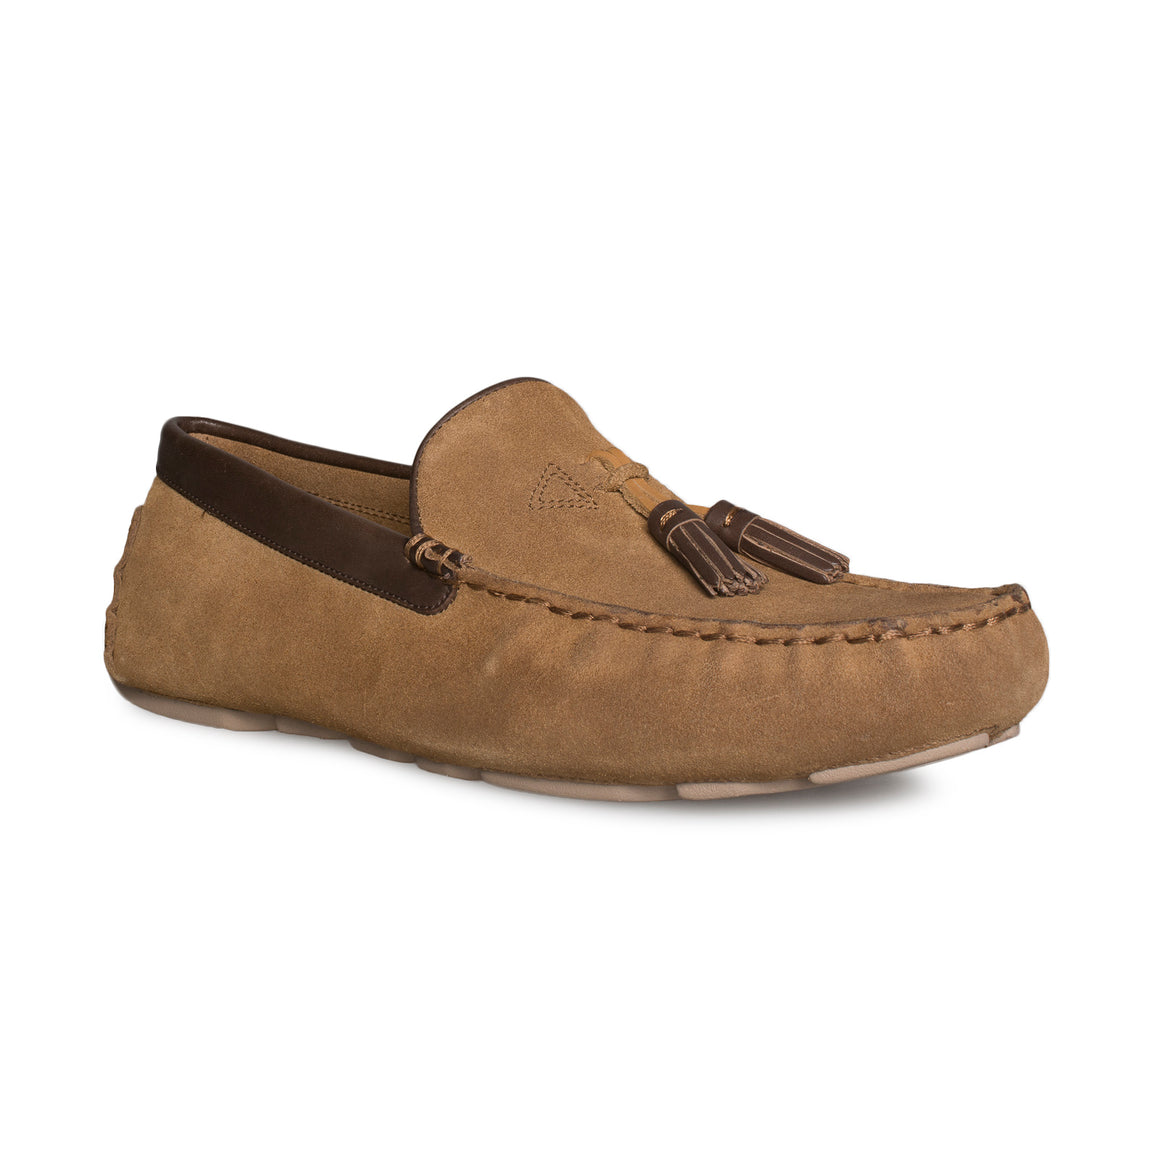 UGG Marris Chestnut Shoes - Men's